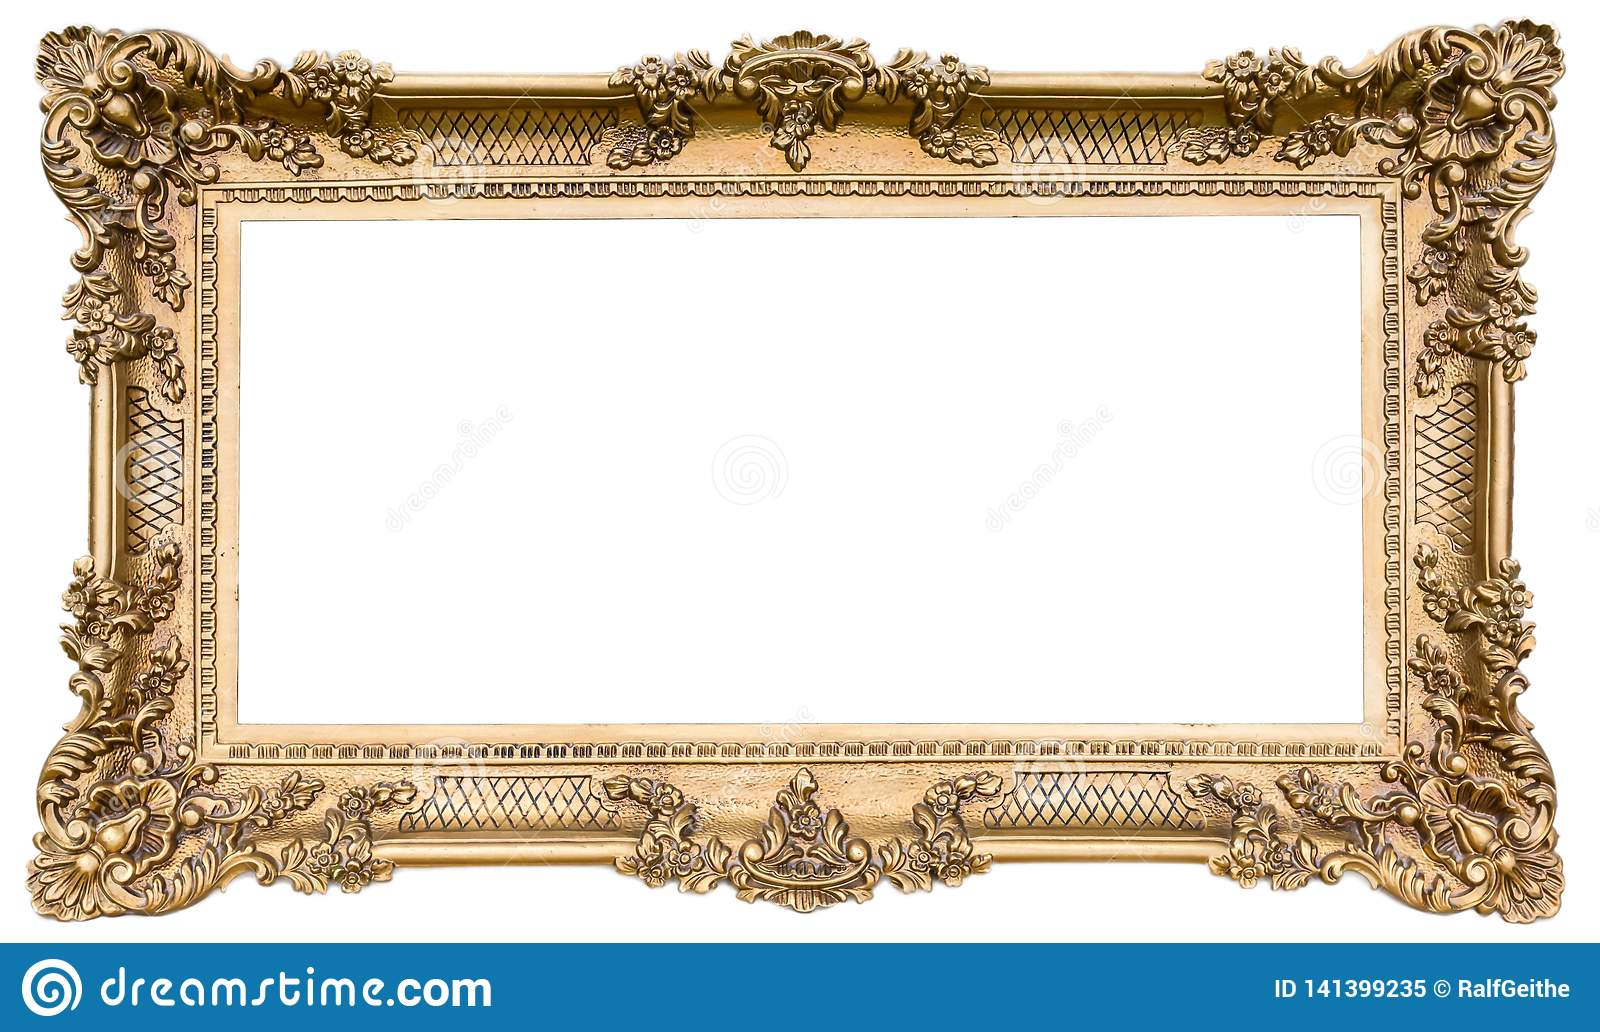 Ornate Golden Wooden Frame As An Isolated Original Stock Image Image Of Panorama Style 141399235